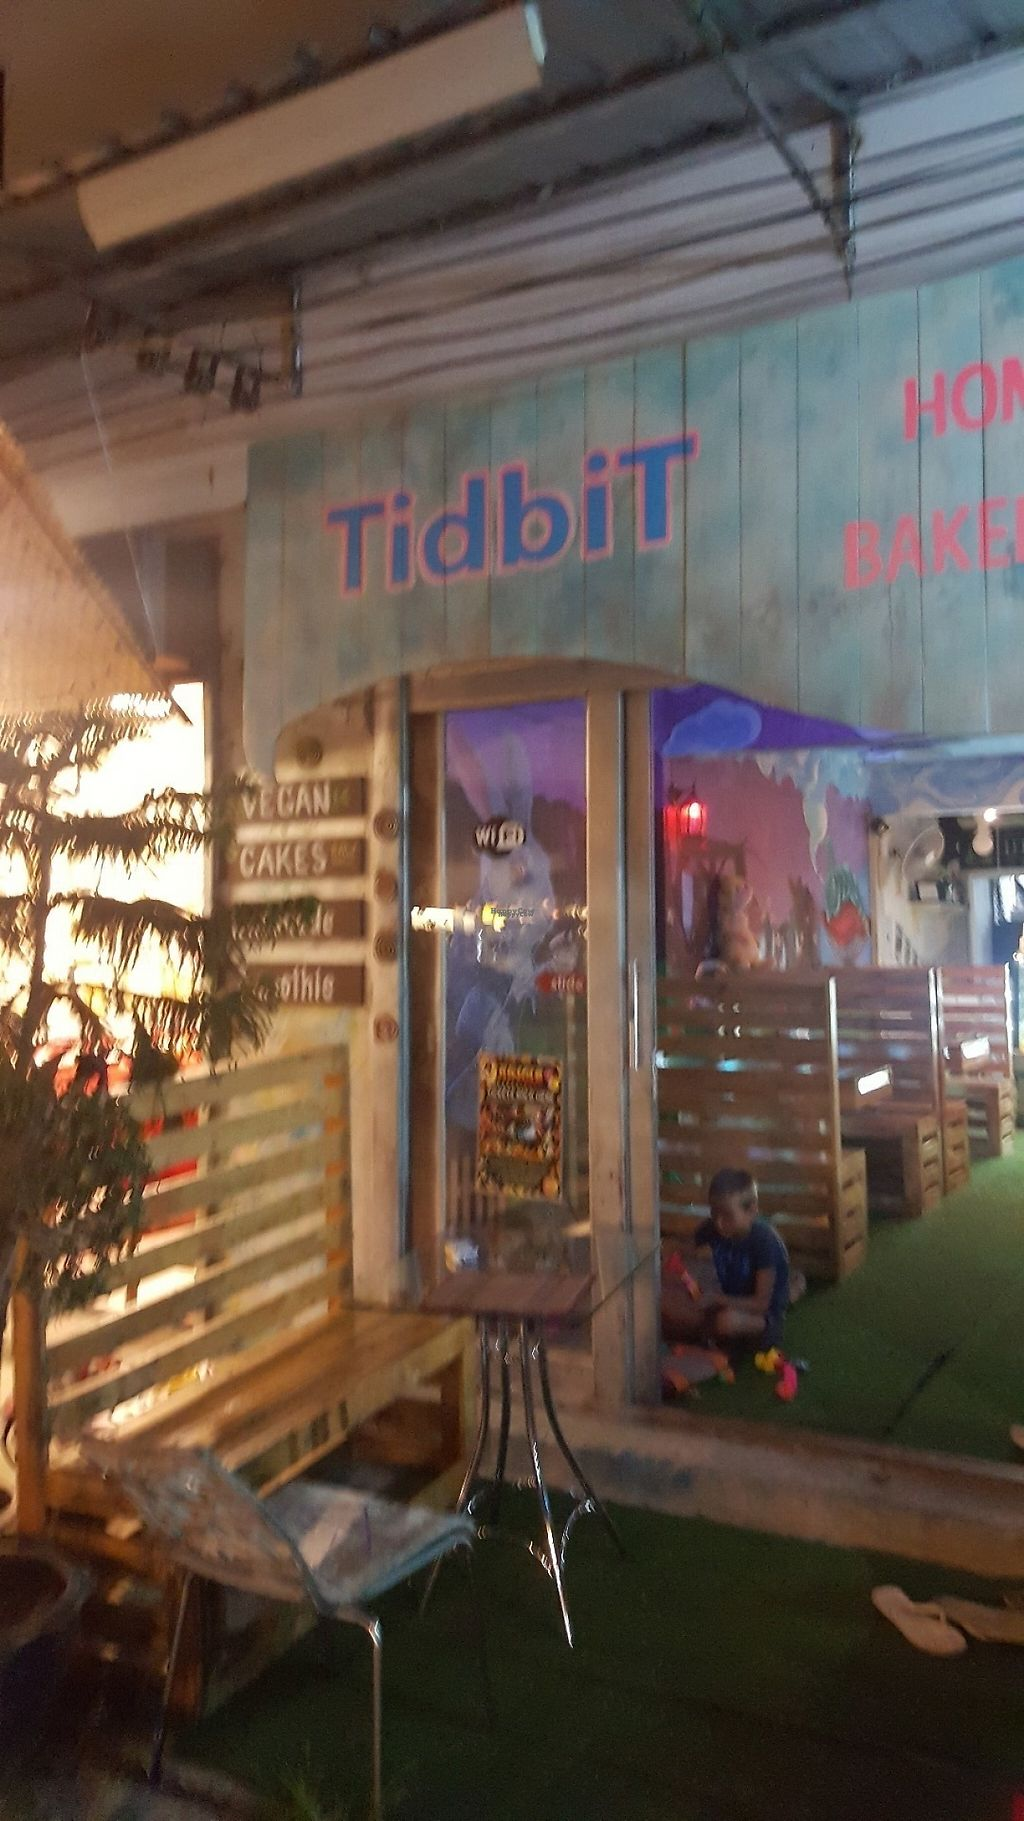 """Photo of Tidbit Bakery  by <a href=""""/members/profile/lene86"""">lene86</a> <br/>Store front  <br/> March 23, 2017  - <a href='/contact/abuse/image/89085/239649'>Report</a>"""